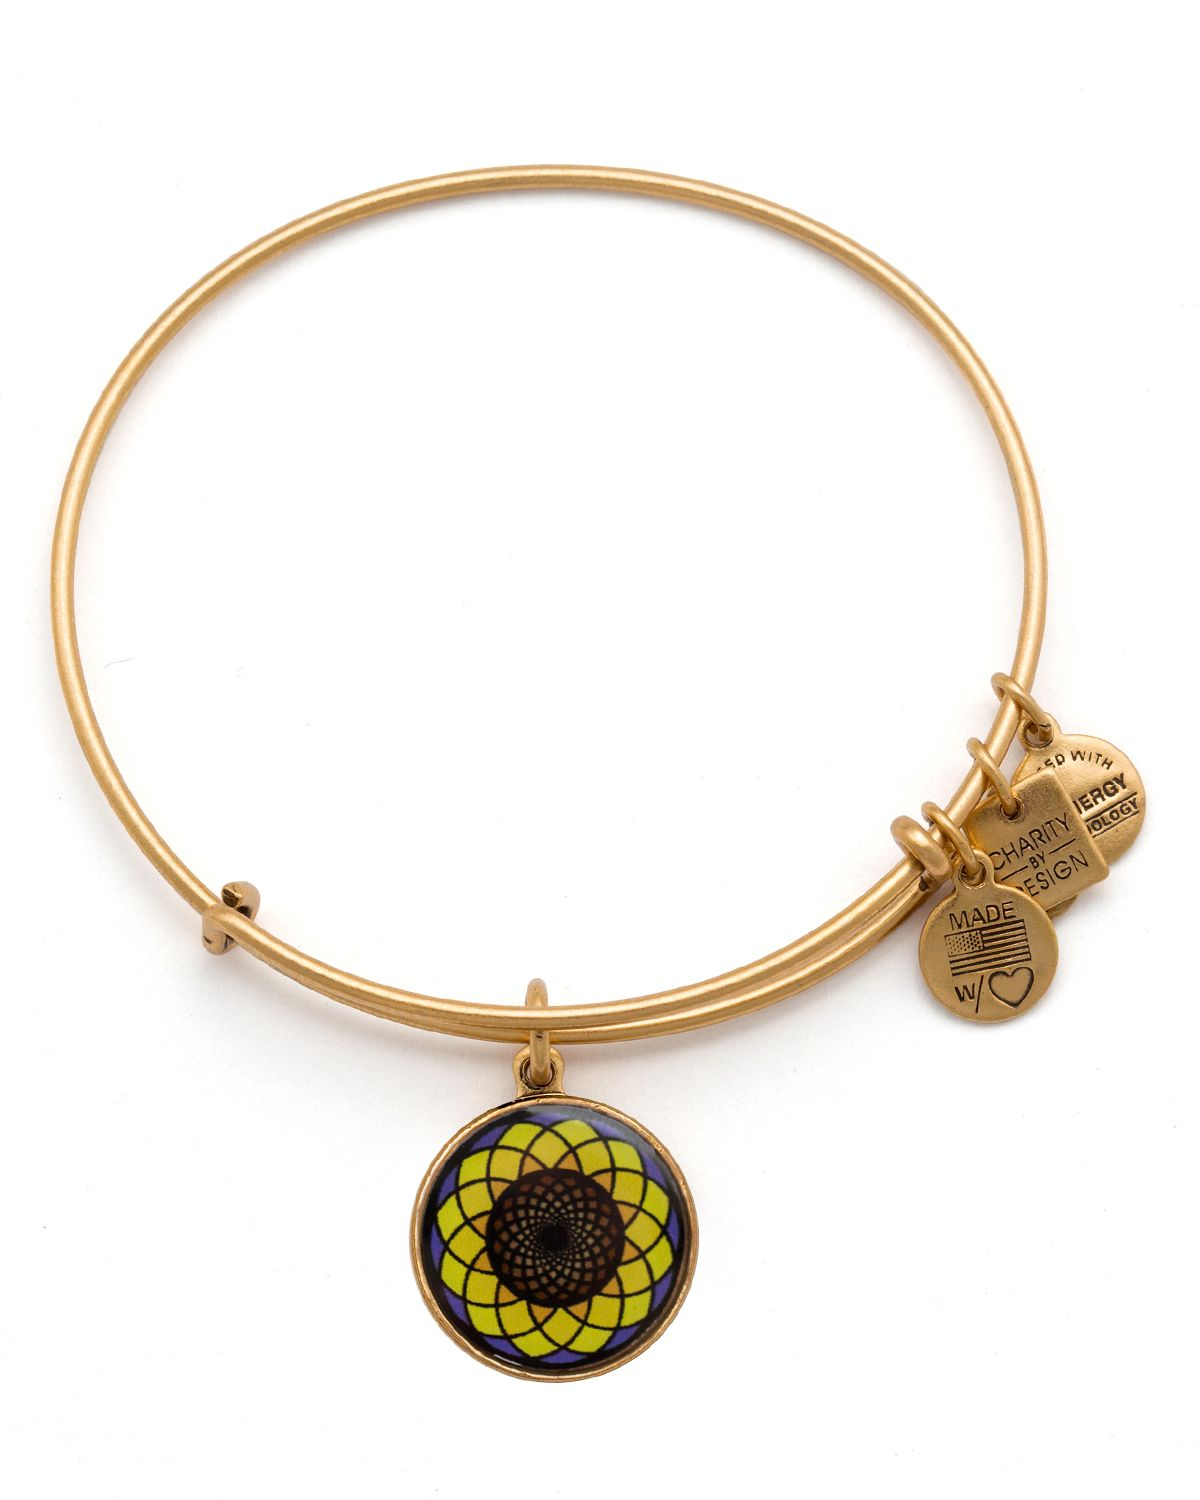 Alex and Ani Student Discount & Deal - StudentRate Deals The Living Water Expandable Wire Bracelet is available in a Russian Gold and a Russian Silver finish. Alex and Ani's patented Expandable Wire Bracelet allows the the wearer to adjust the Bracelet for a perfect fit.